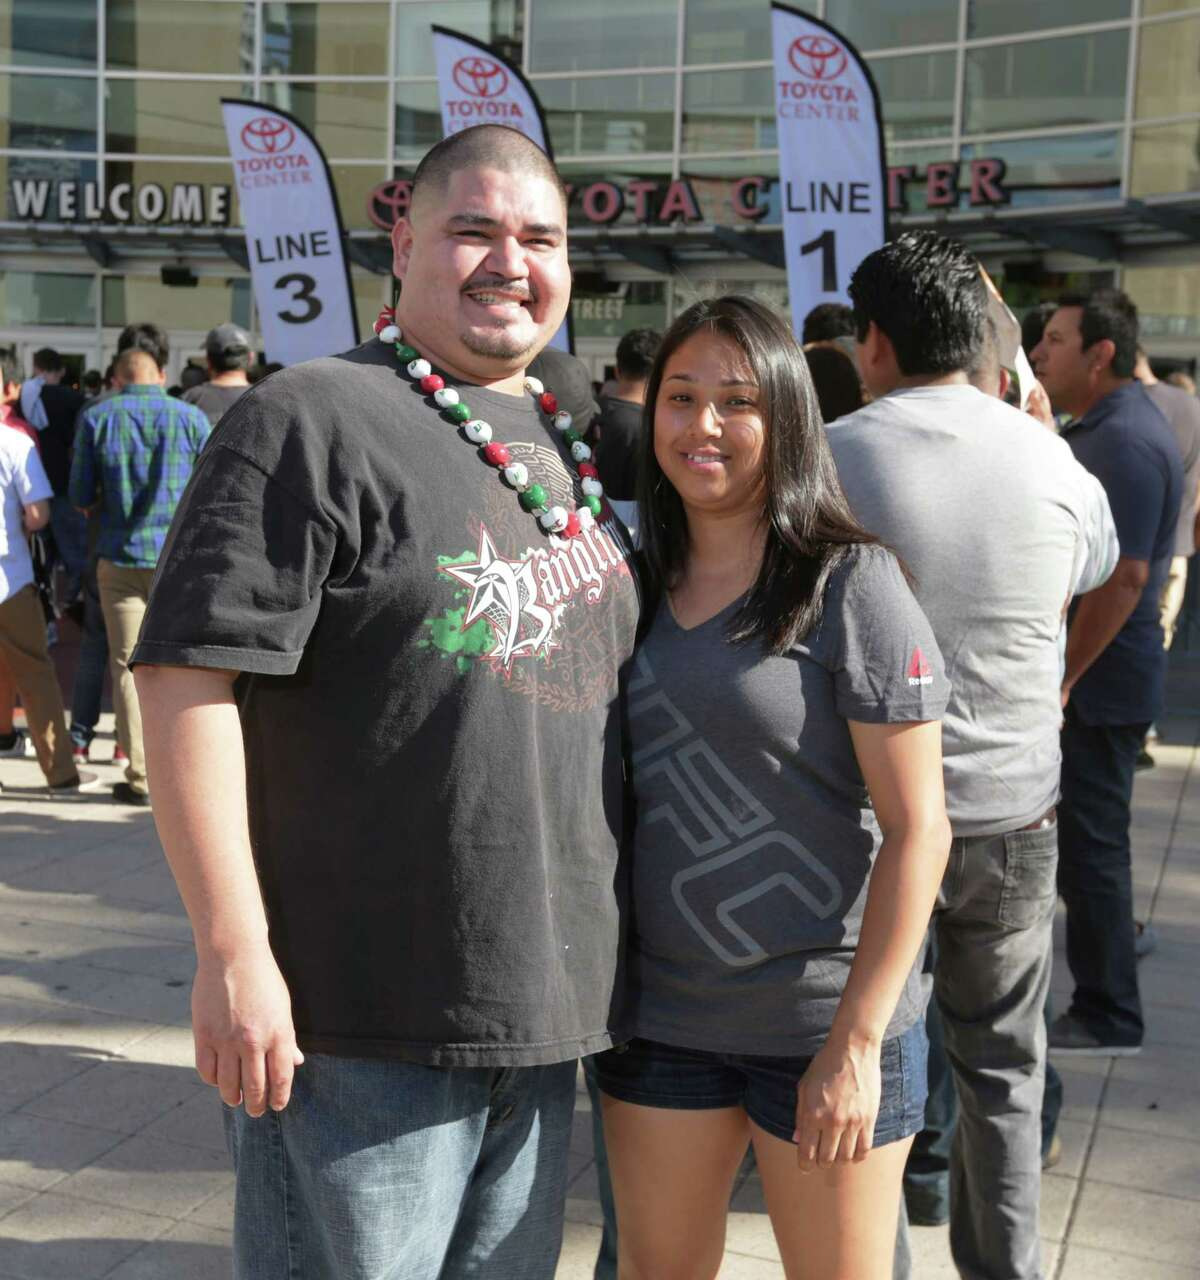 Fans pose for a photo before UFC 192 at the Toyota Center Saturday, Oct. 3, 2015, in Houston.